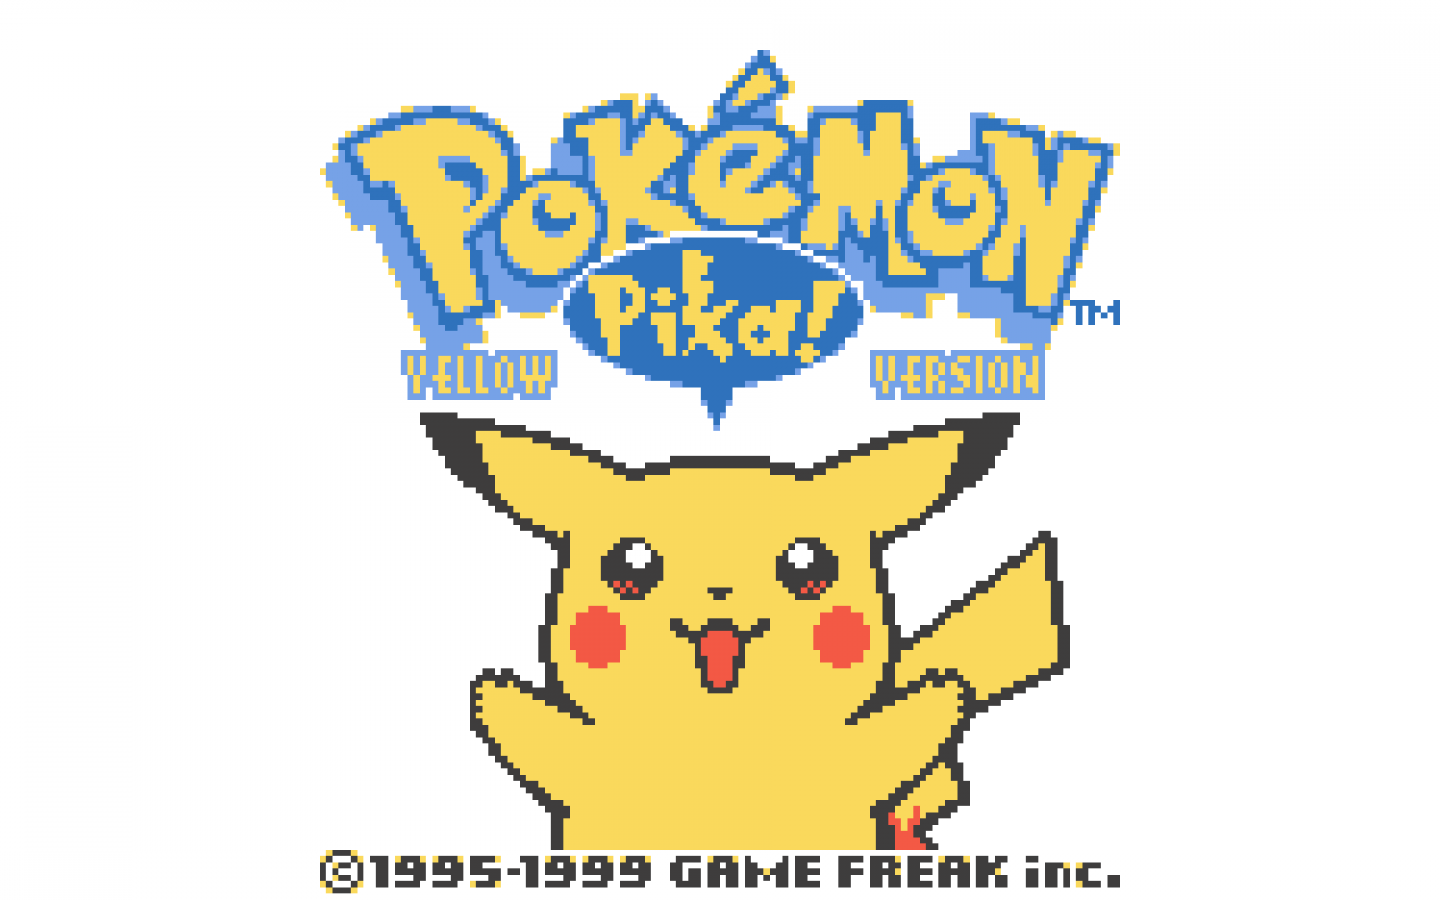 Free Download Wallpaper Pokemon Yellow Version Hd Wallpaper Upload At November 1 1920x1080 For Your Desktop Mobile Tablet Explore 47 Pokemon Yellow Wallpaper Pokemon Wallpaper For Computer Pokemon Phone